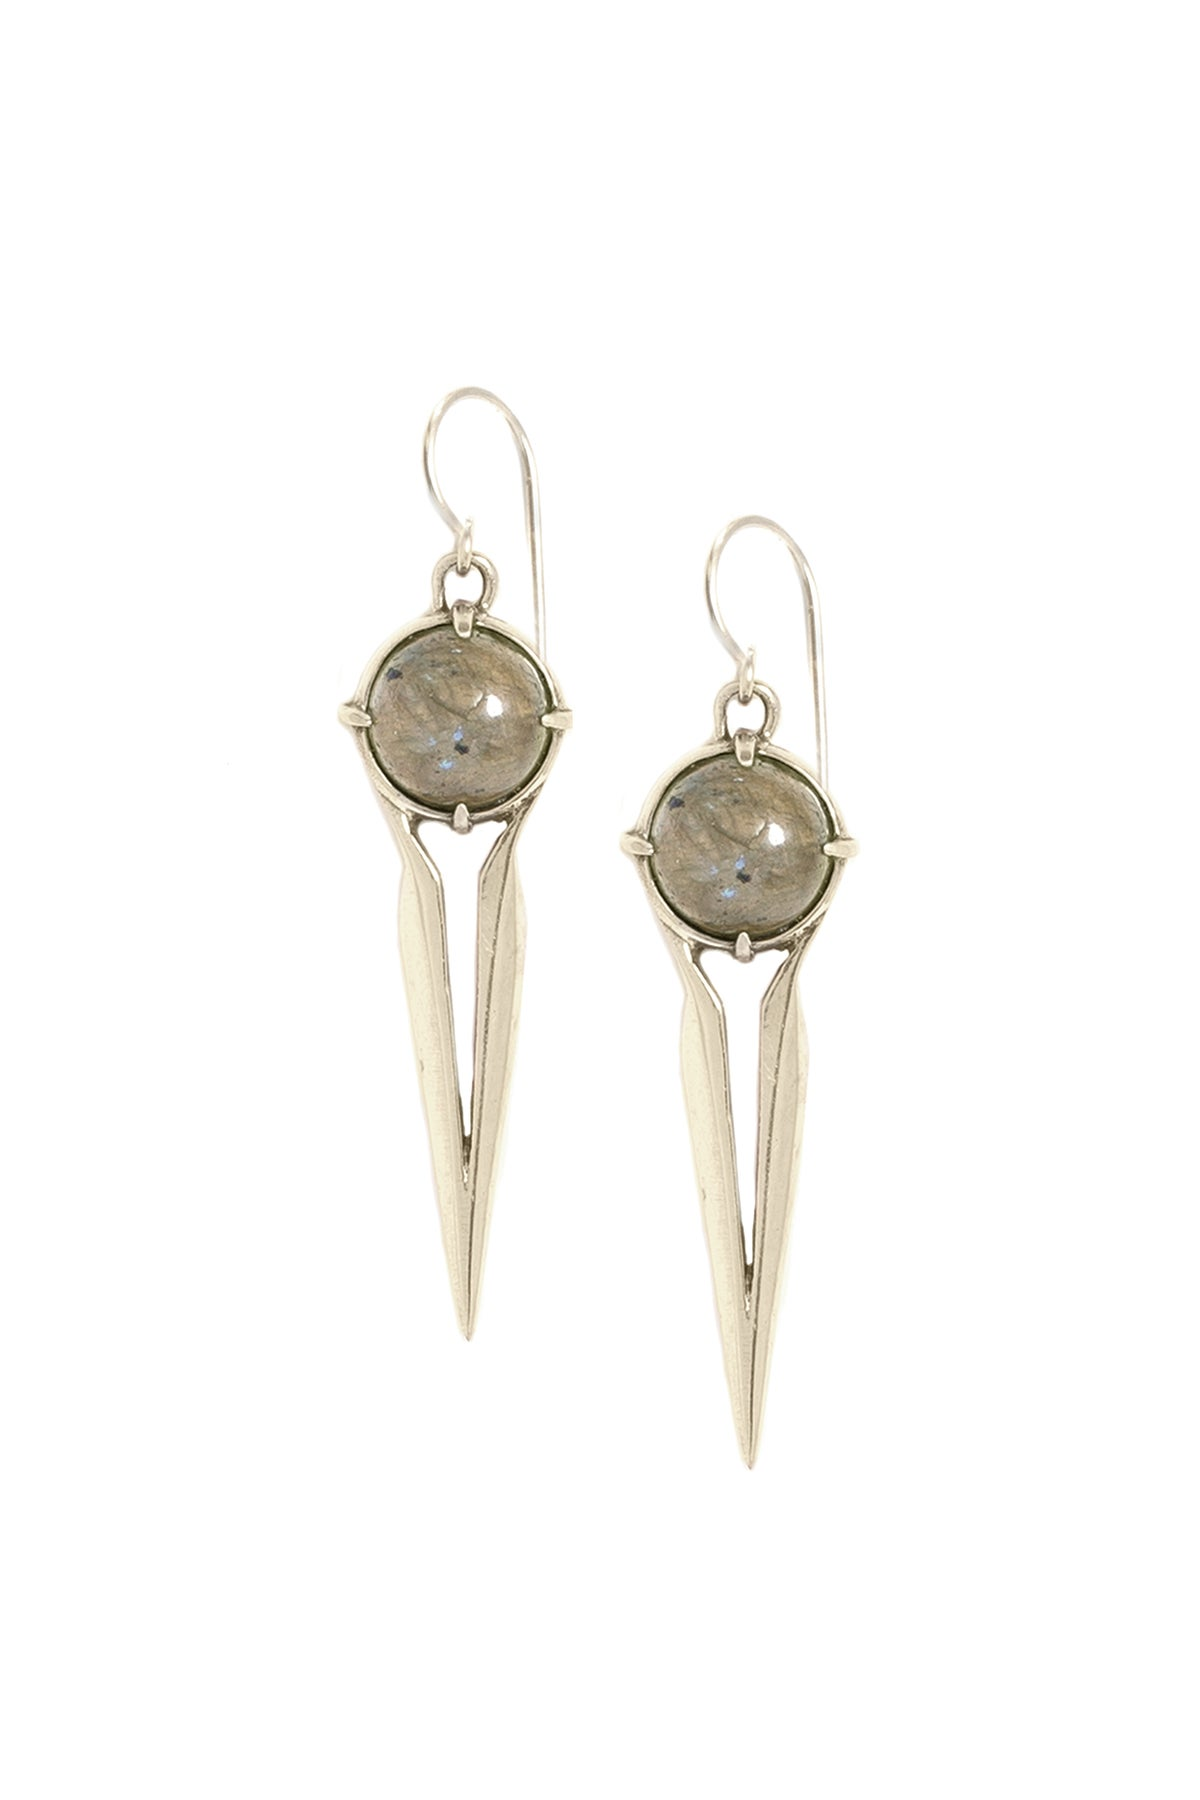 Image of LABRADORITE FALCON EARRINGS